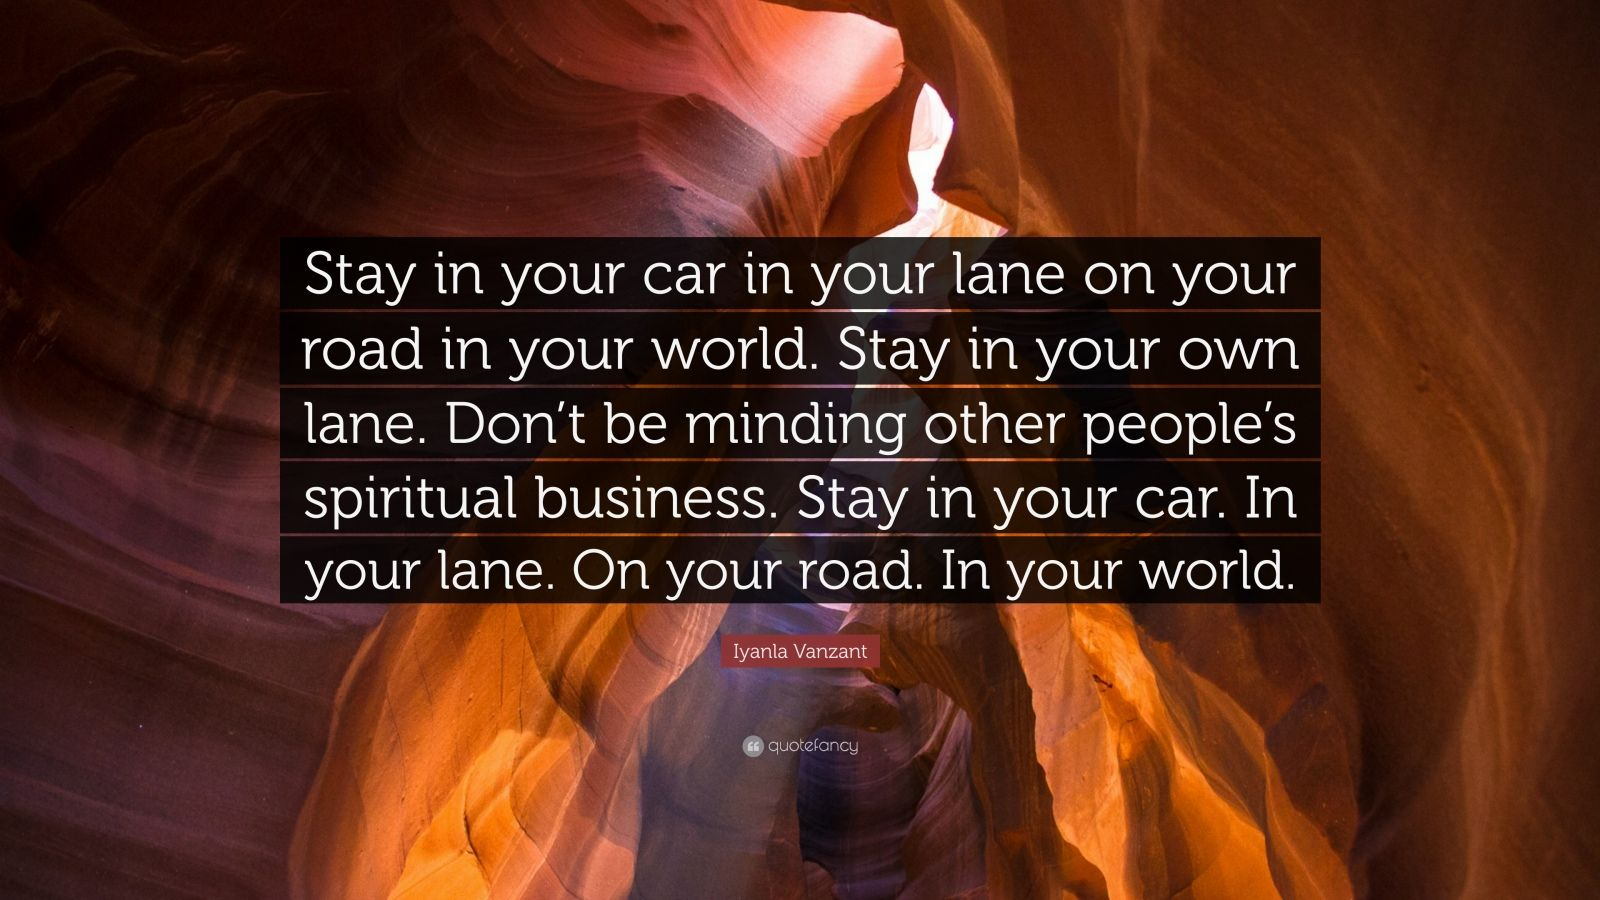 "Iyanla Vanzant Quote: ""Stay in your car in your lane on your road in your world. Stay in your own lane. Don't be minding other people's spiritual business. Stay in your car. In your lane. On your road. In your world."""